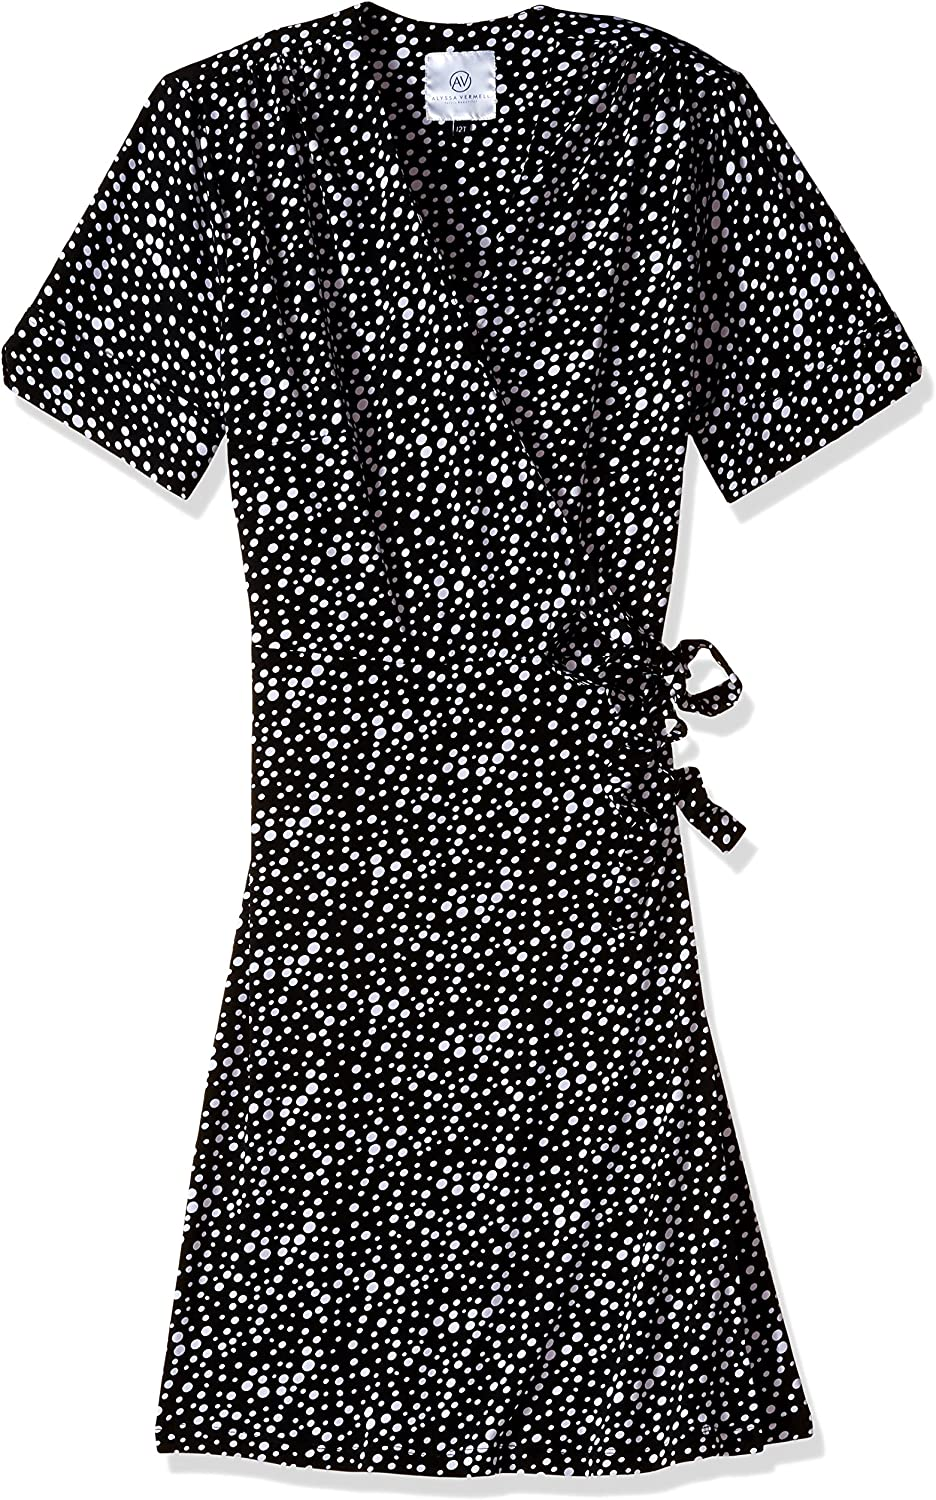 Alyssa Vermell Apparel The Liza Wrap Dress, Pebbles, 4